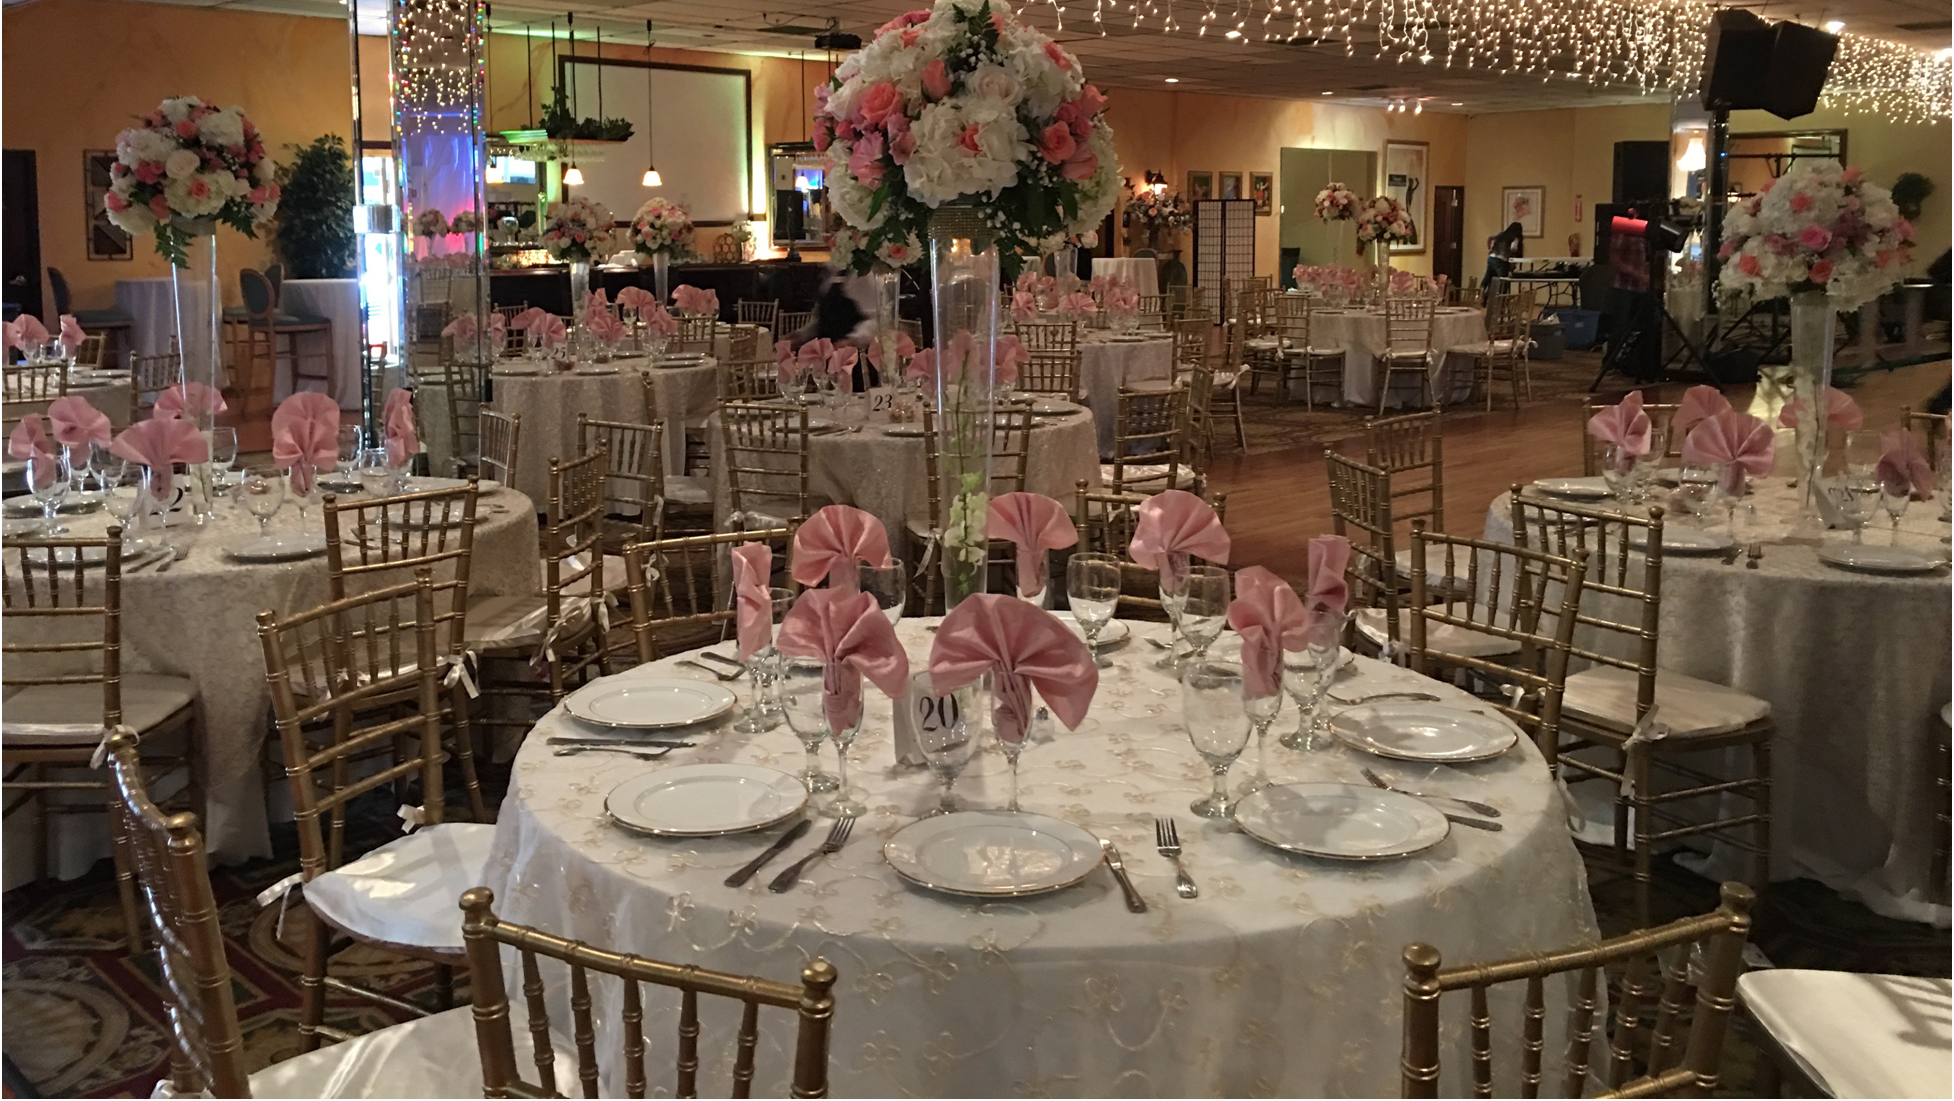 Goldcoast Ballroom - A Magnificent Venue for Weddings, Private Parties & Other Events